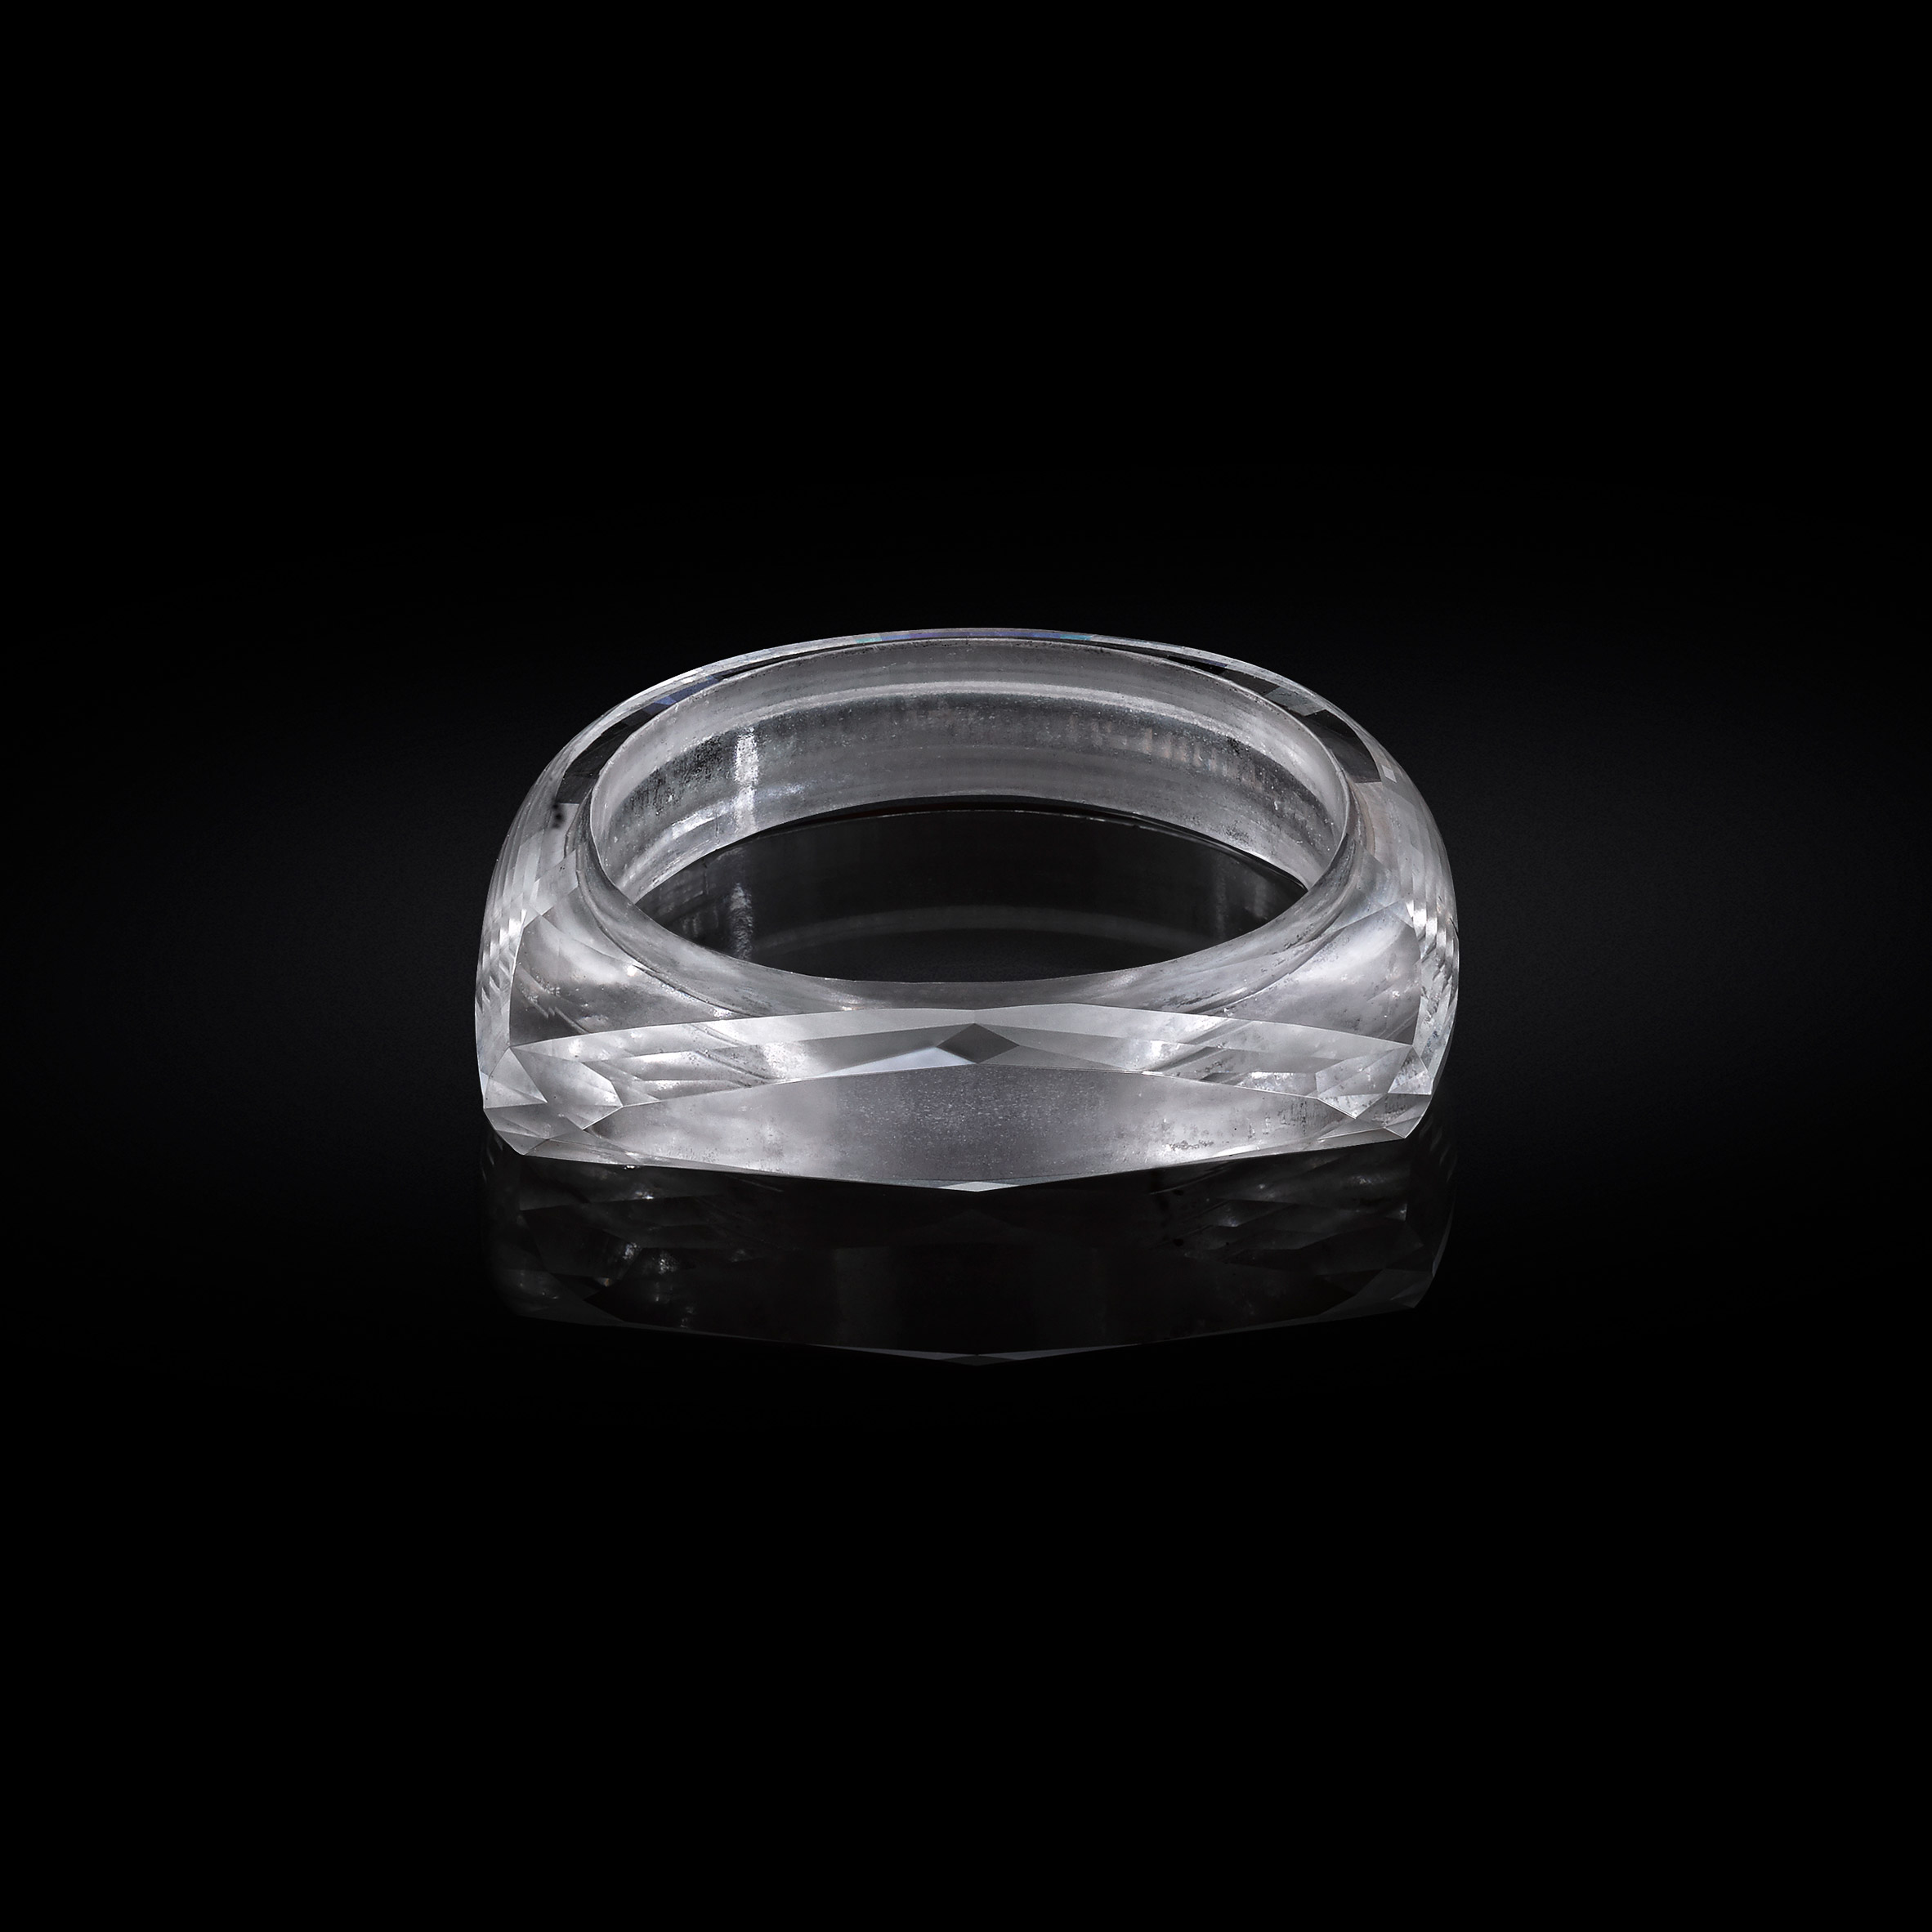 Jony Ive and Marc Newson's all-diamond ring revealed